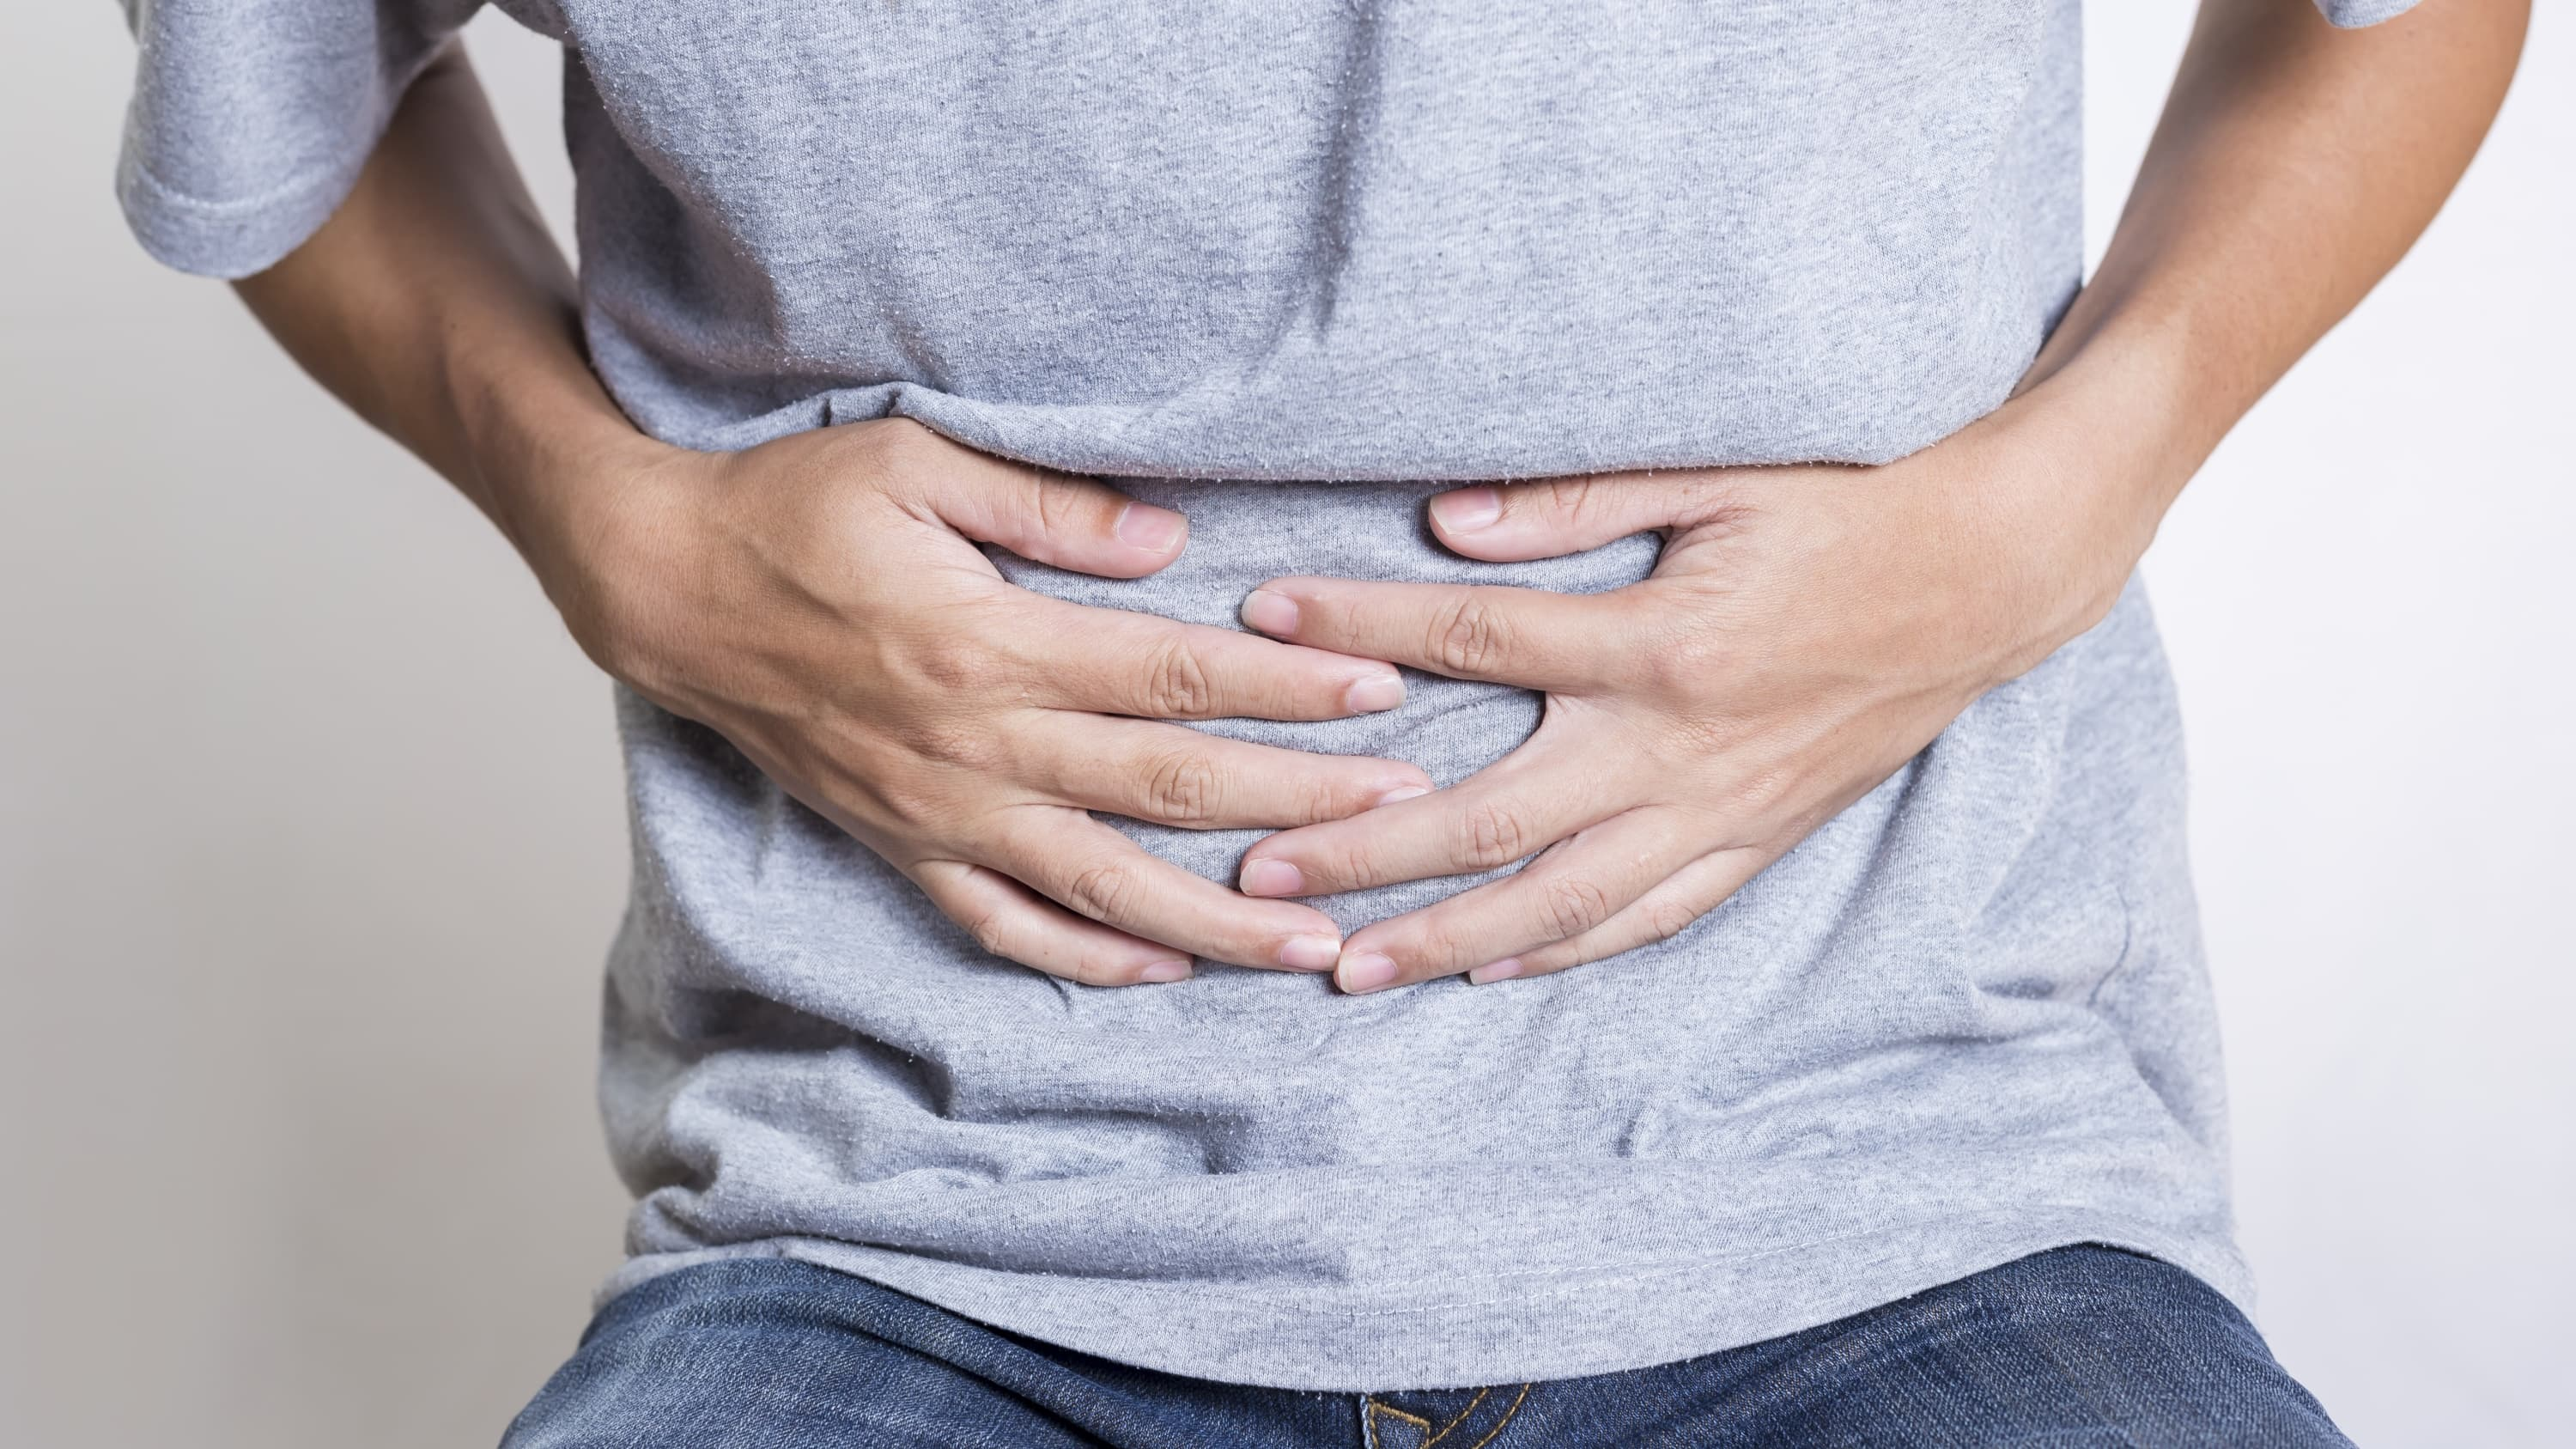 Man Stomach Ache, possibly from C. diff